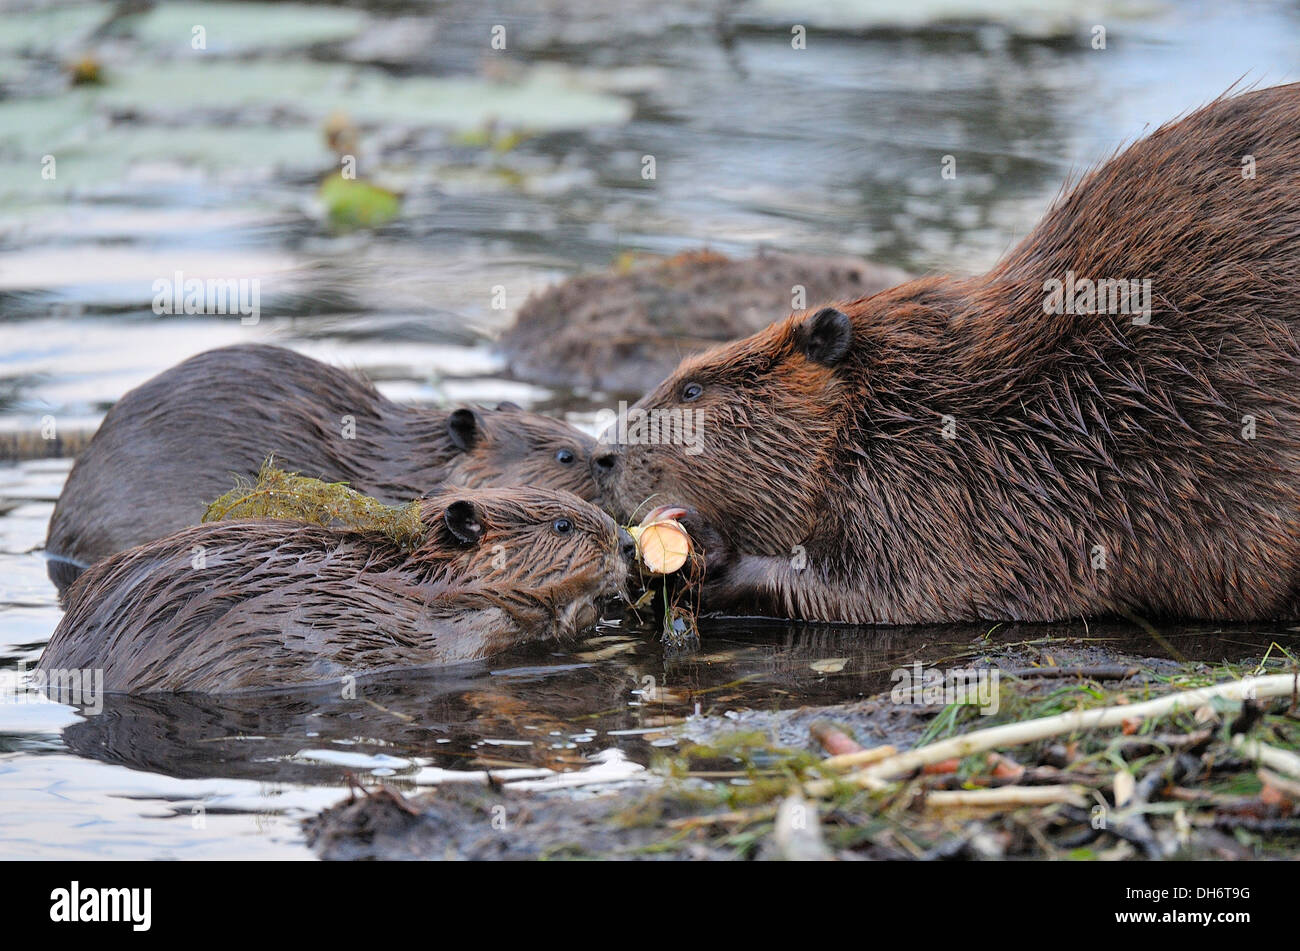 A mother beaver lets 2 small young beavers chew bark off the same piece of aspen tree. - Stock Image